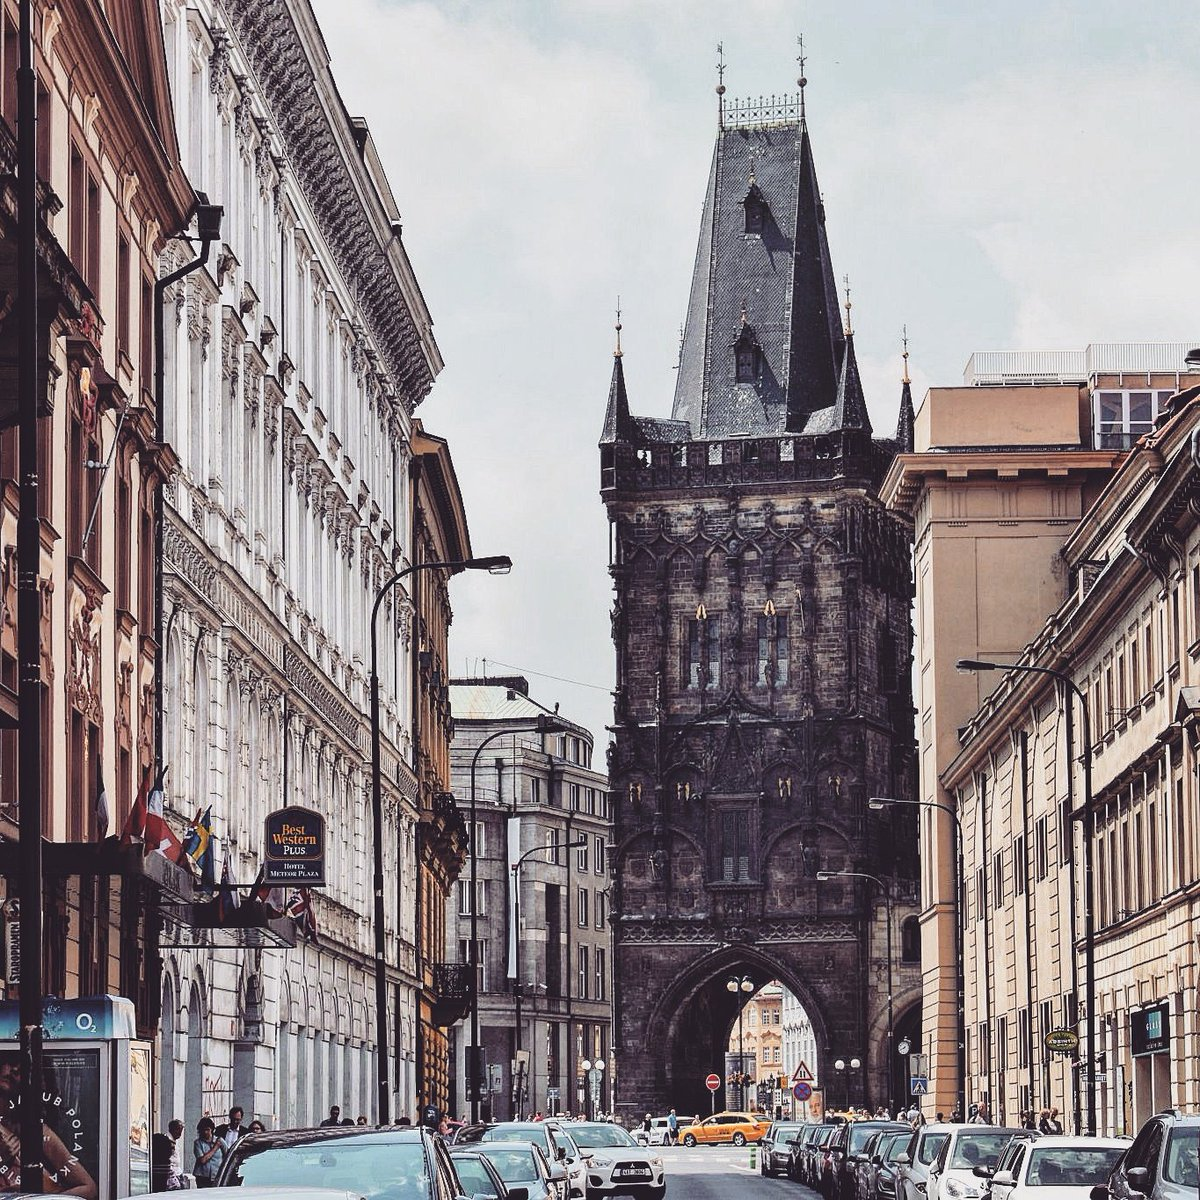 Magnificent street leading to the medieval Powder Tower in #Prague / #travel #travelblog #travelblogger #traveling #exploring #visitCZ RT<br>http://pic.twitter.com/3anatyx3KS